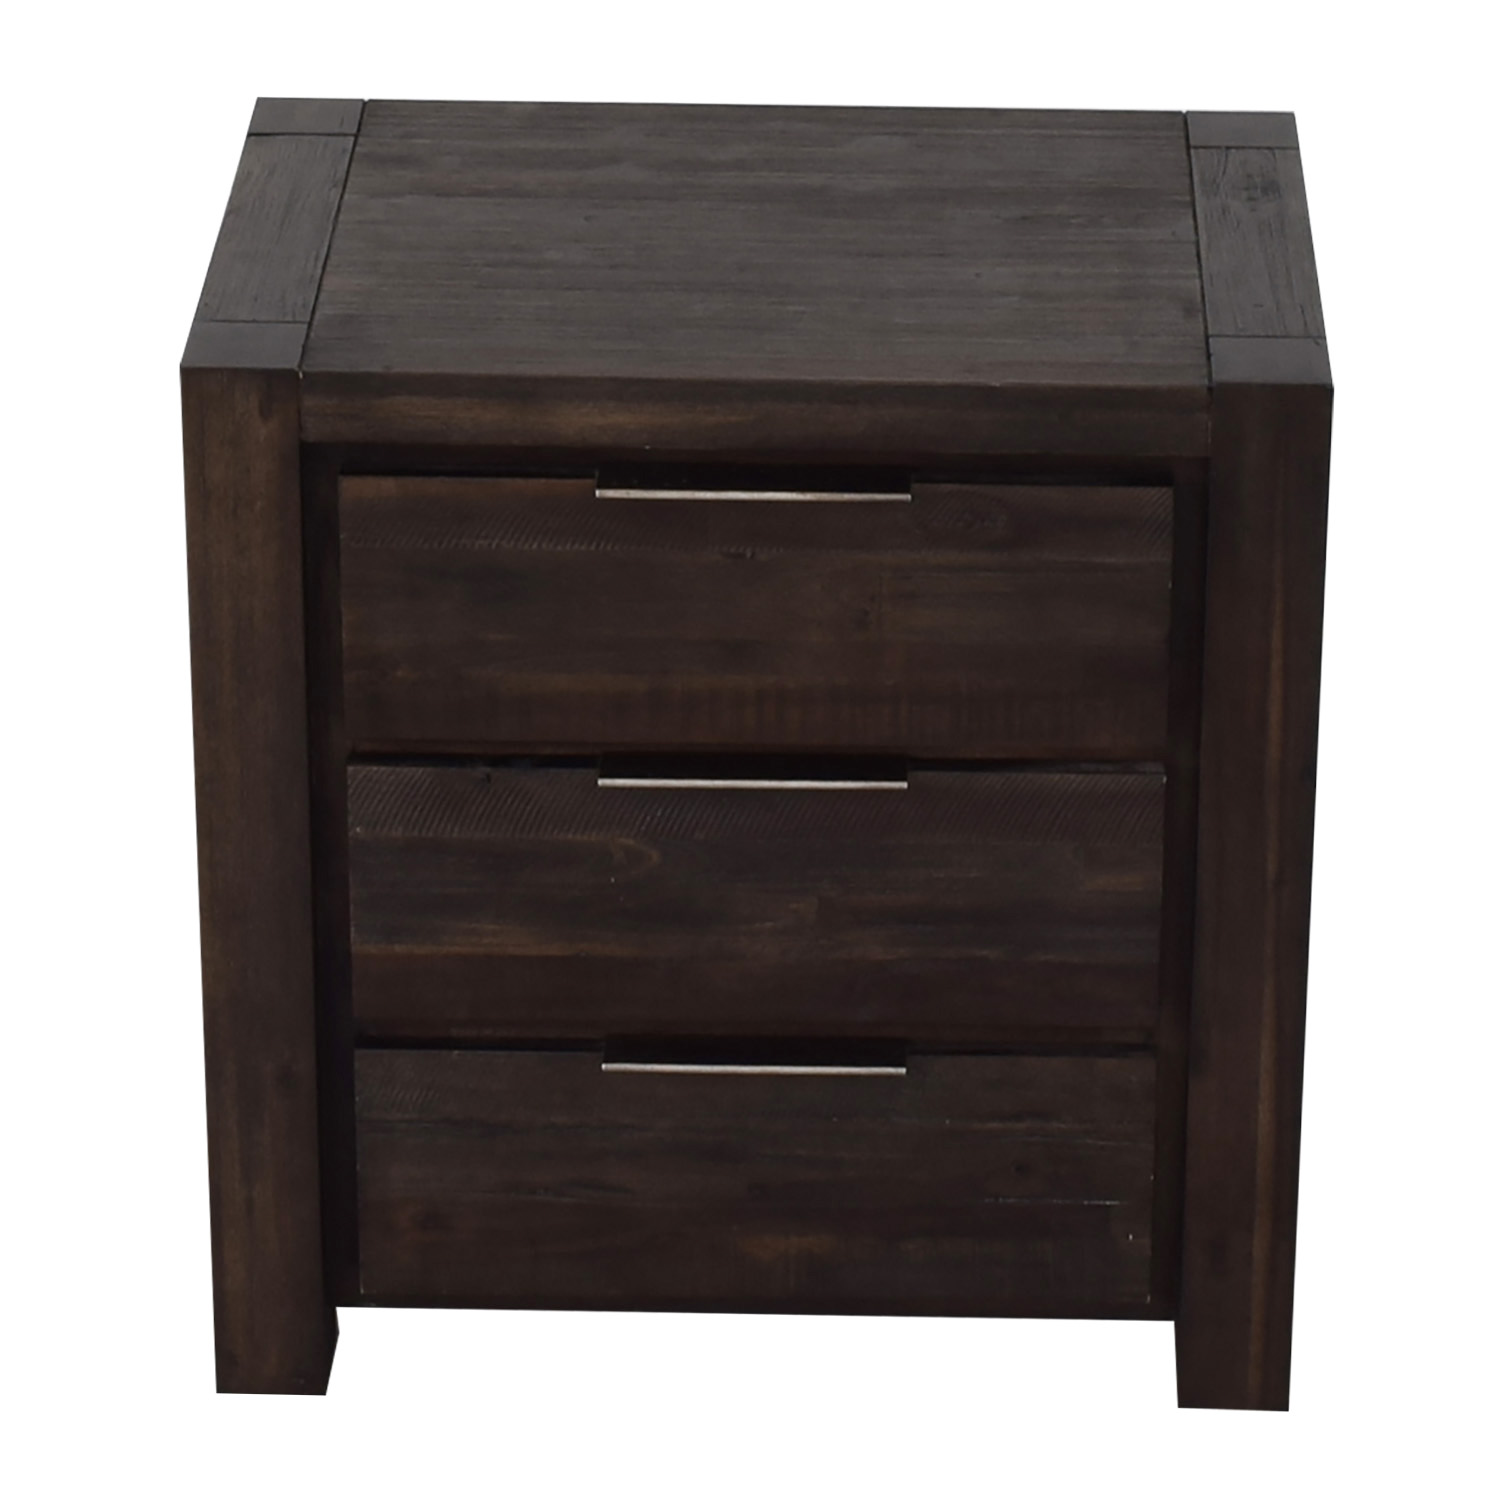 Modus Savana Three-Drawer Nightstand / Tables